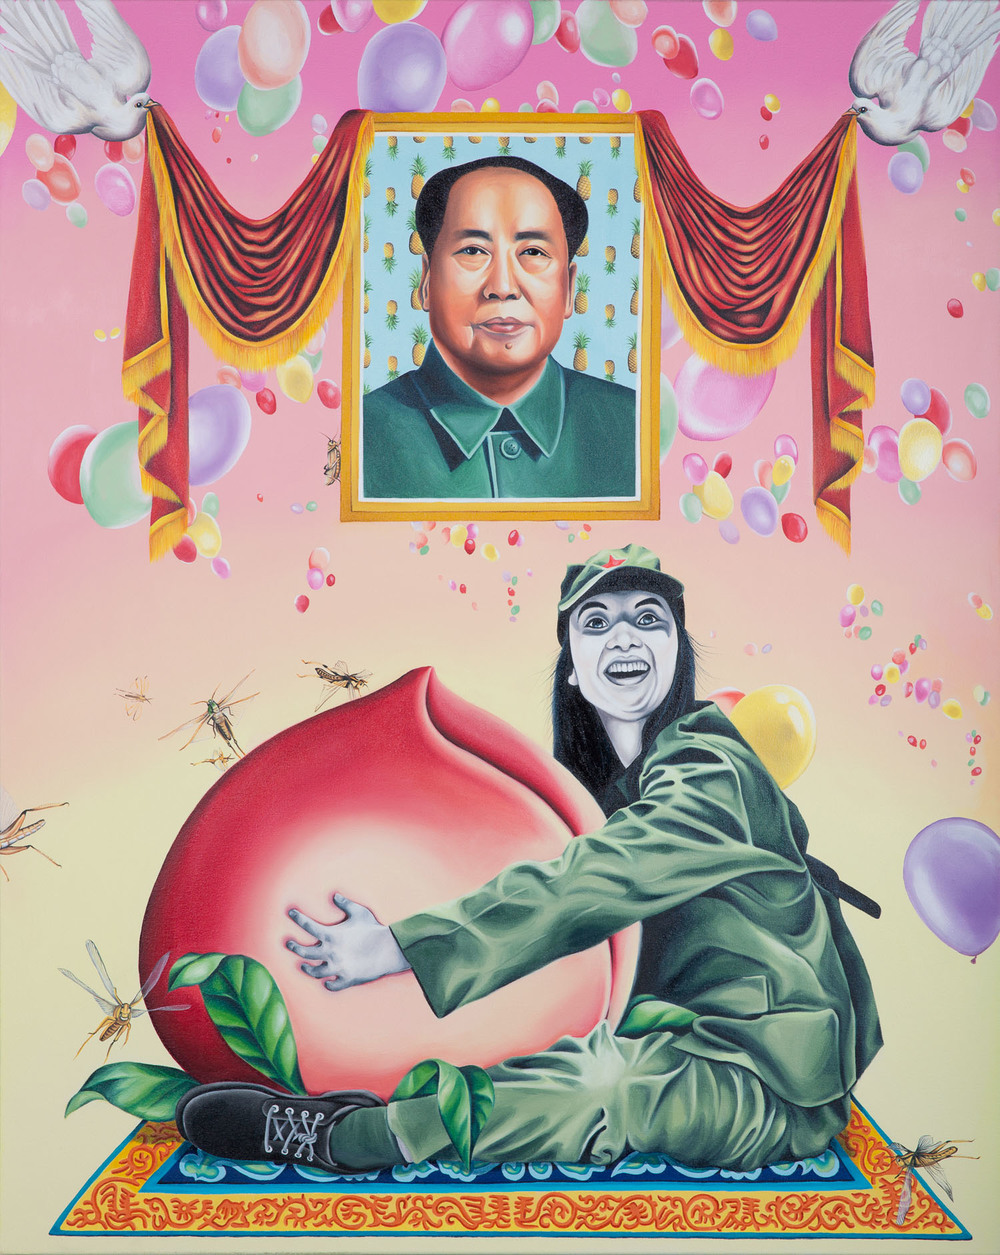 Humbly Offering Chairman Mao 10,000 Years of Boundless Longevity